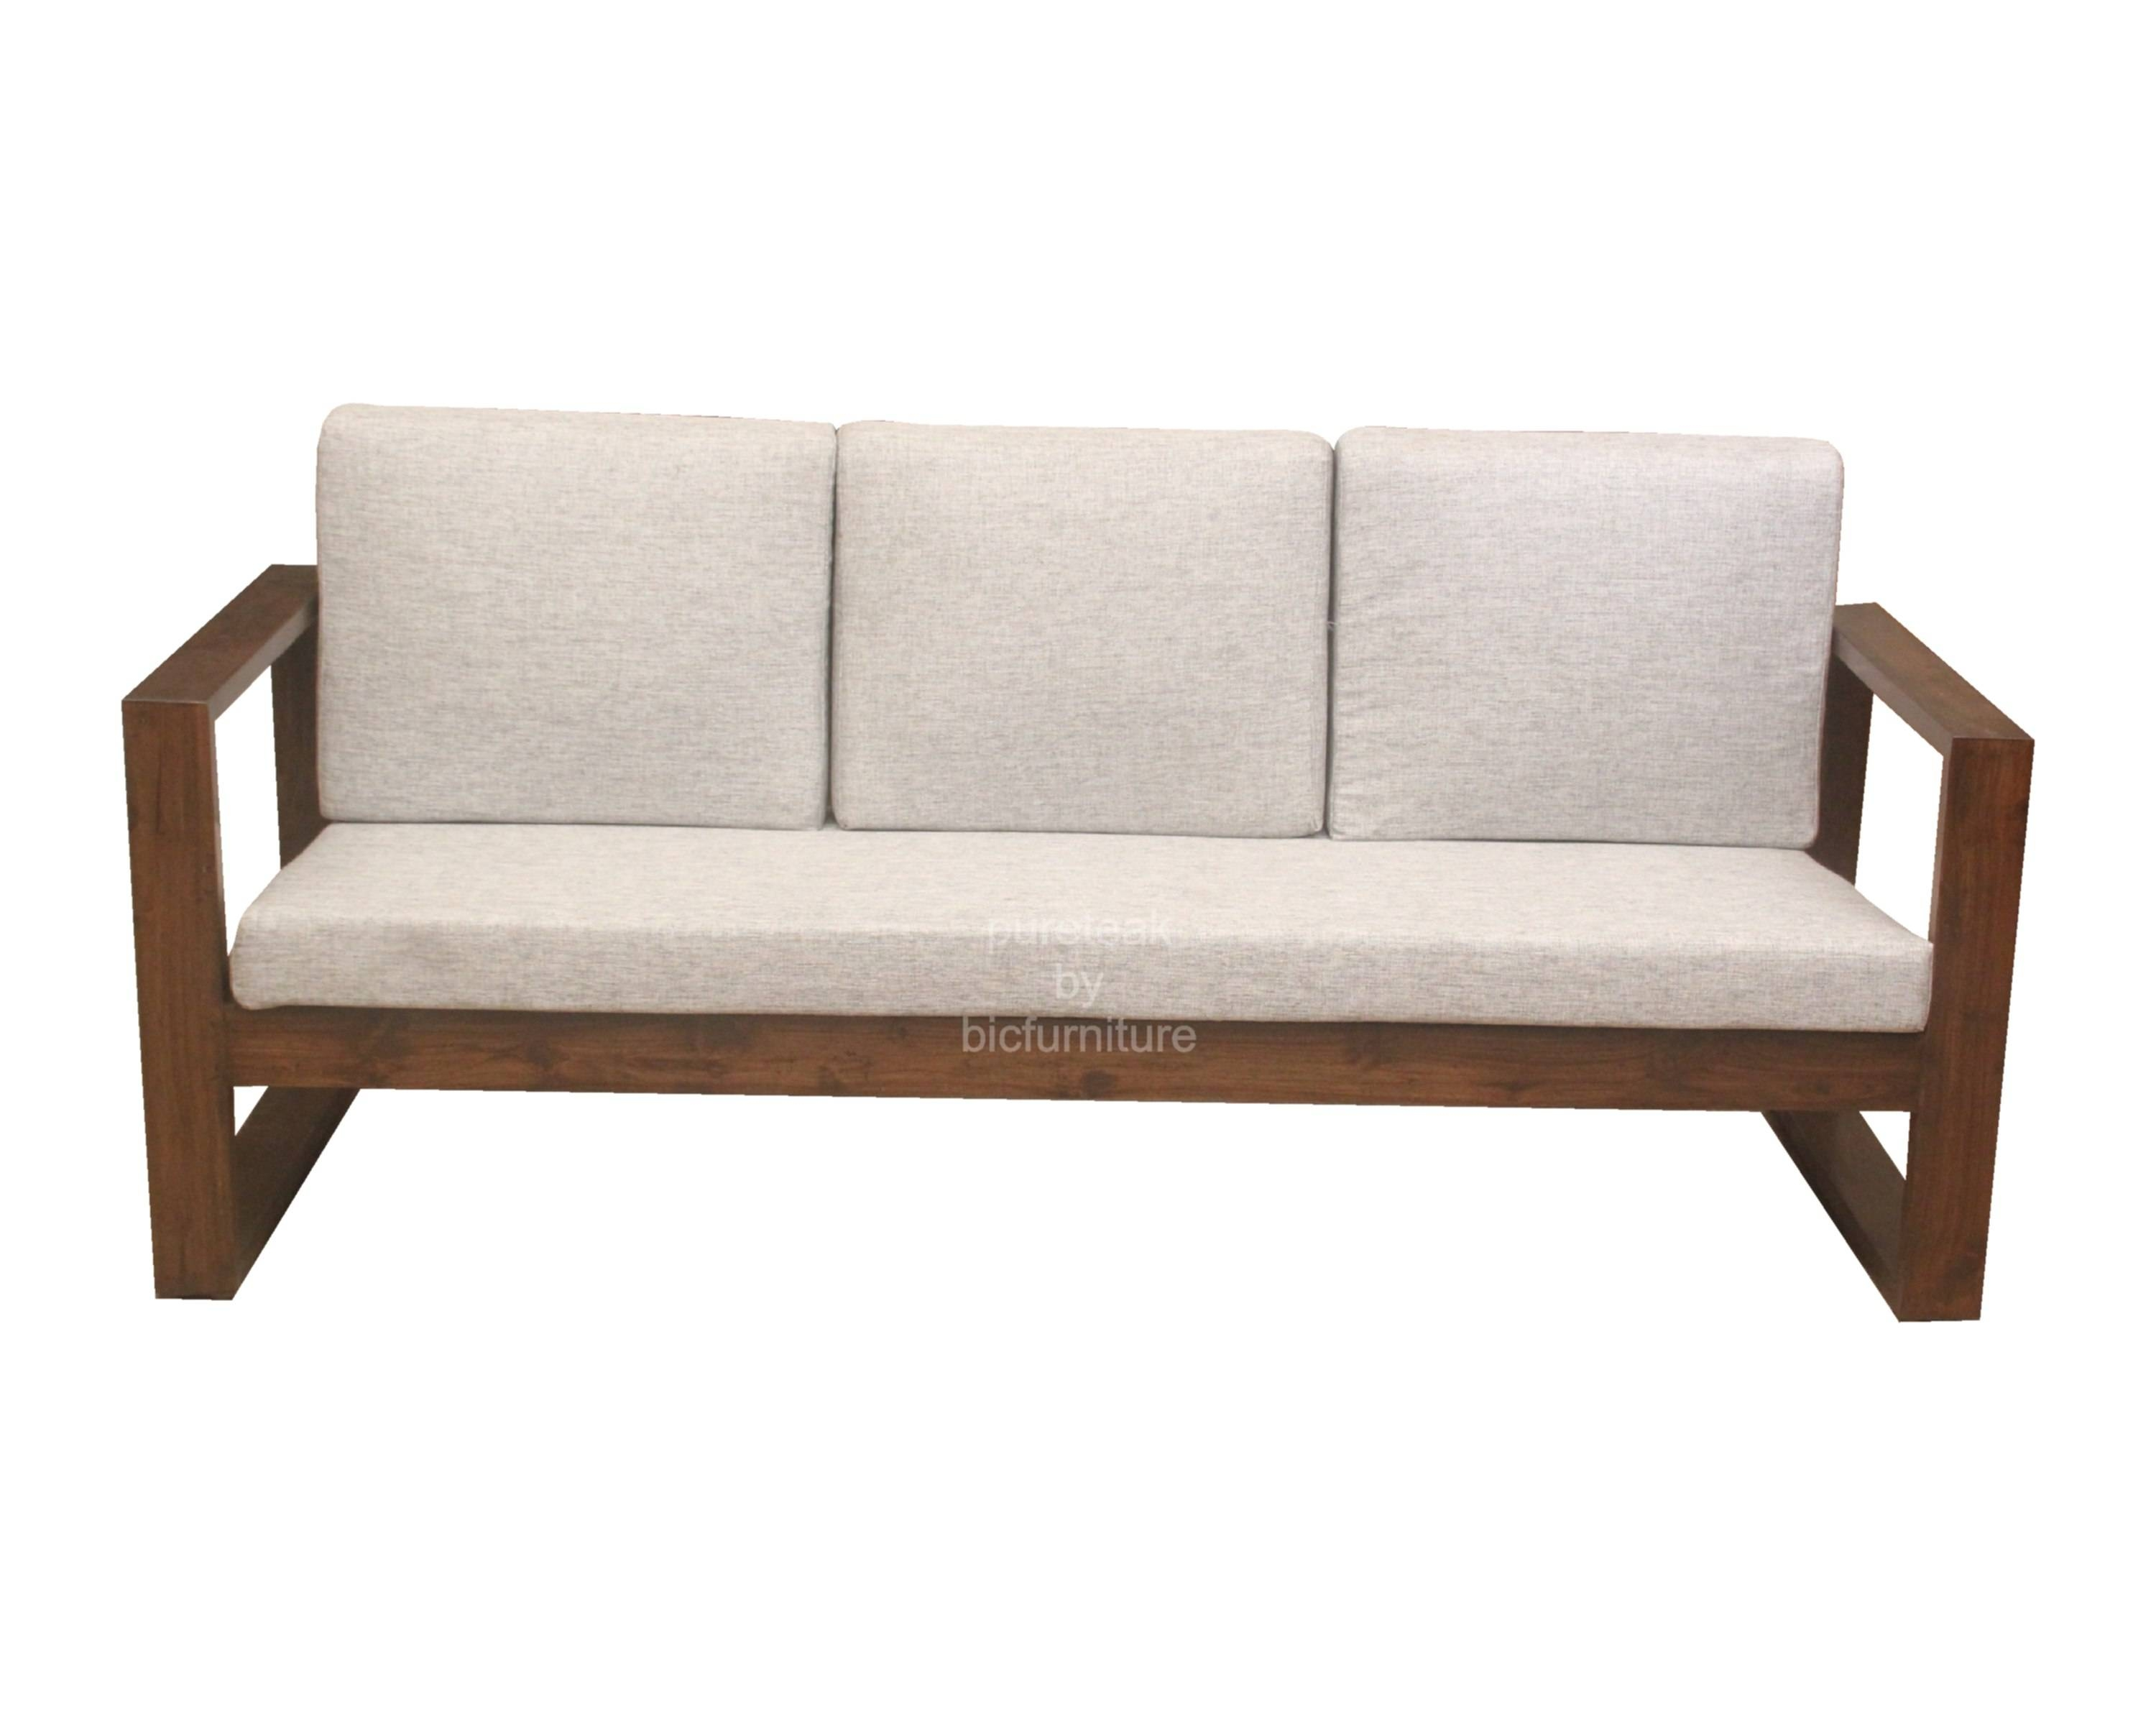 Wooden Sofas Images | Kashiori Wooden Sofa, Chair, Bookshelves with regard to Simple Sofas (Image 15 of 15)